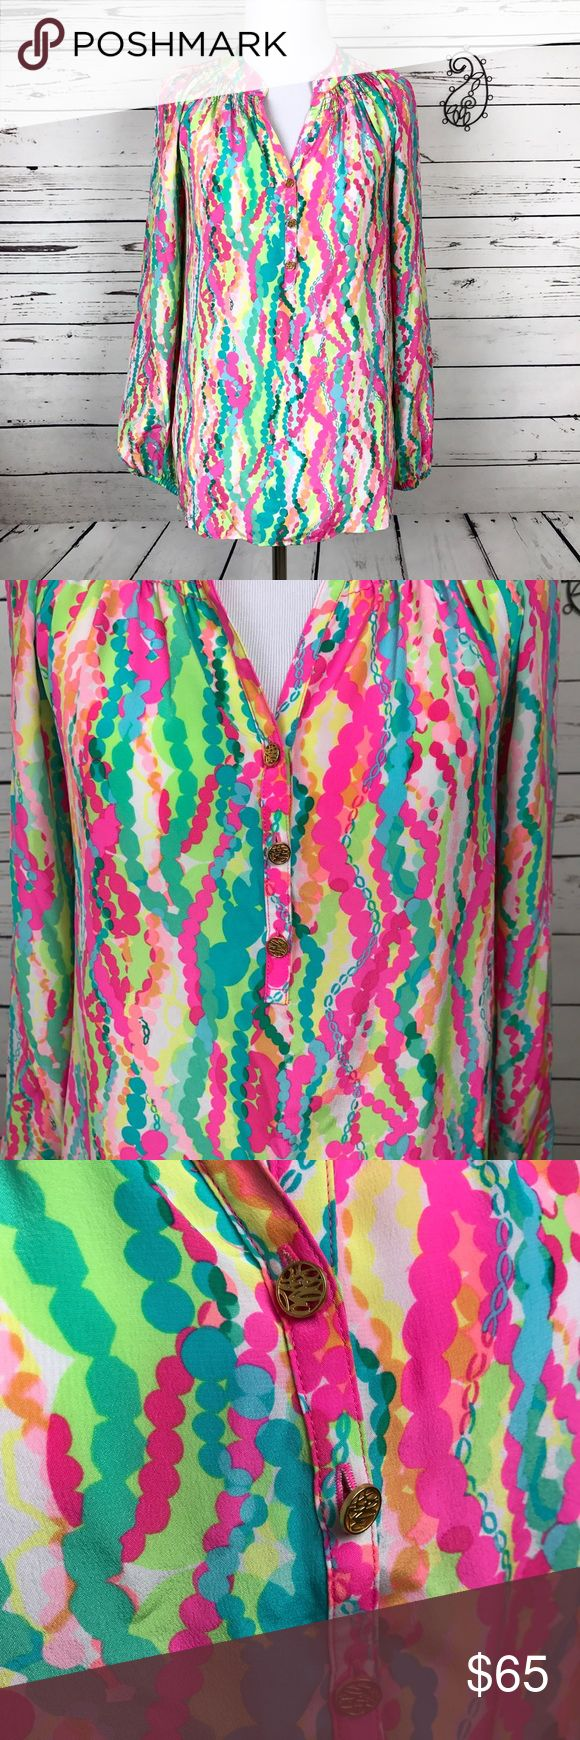 Lilly Pulitzer Elsa 100% Silk Long Sleeve Resort Signature Lilly Pulitzer top with split neckline and partial button front. Buttons are gold. Long blouson elasticized sleeves. 100% silk . Dry cleaned only. Size XS. Smocking around neckline. Sizing chart in pics . Lilly Pulitzer Tops Blouses